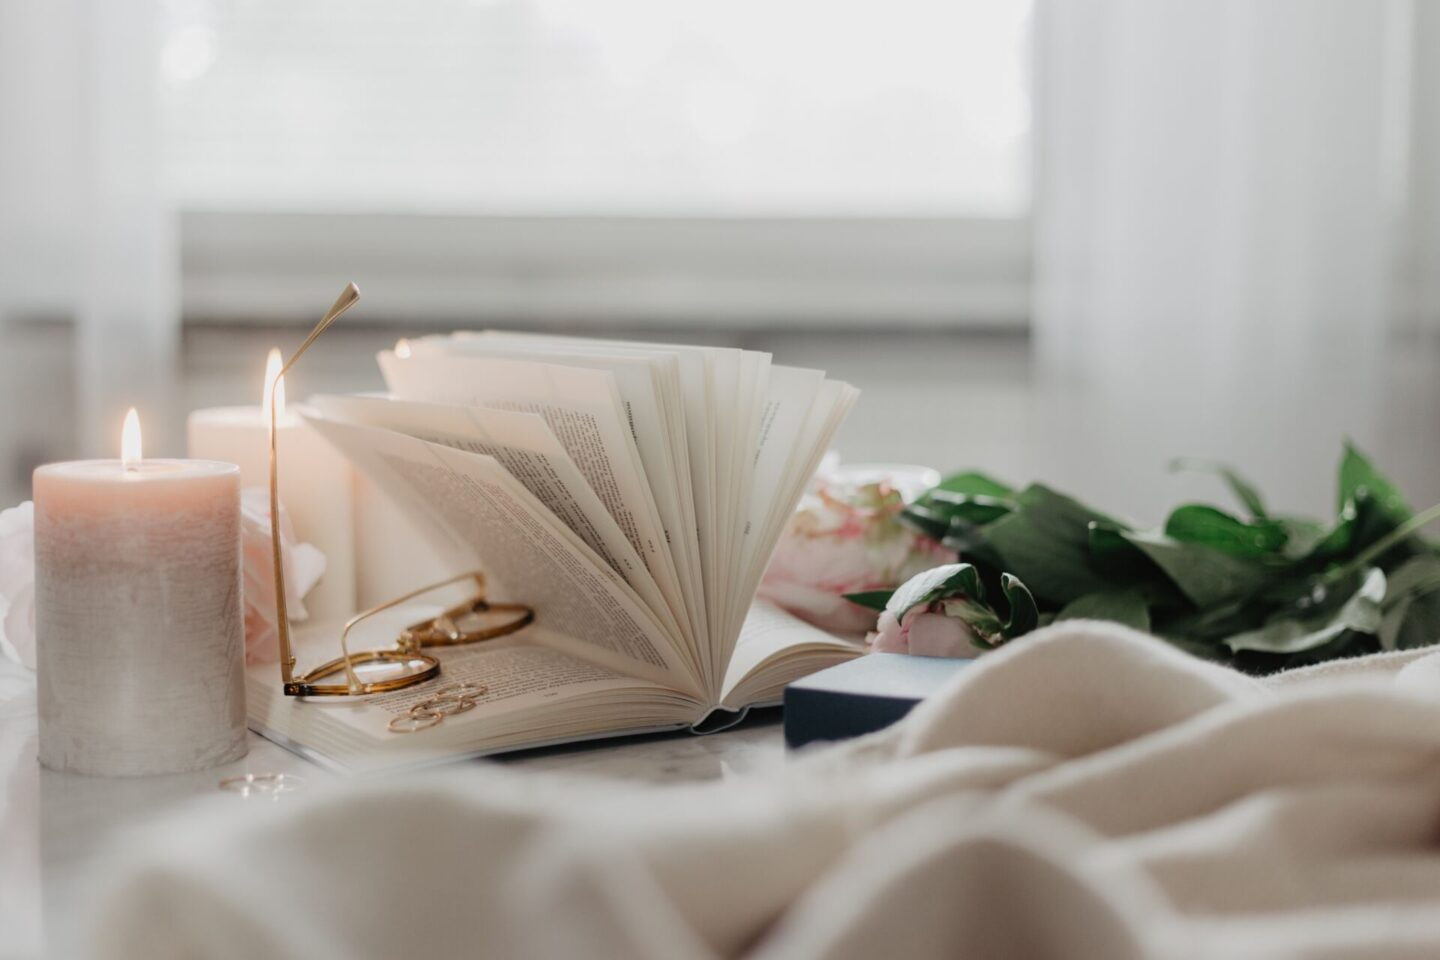 Tips For Creating Hygge In Your Home